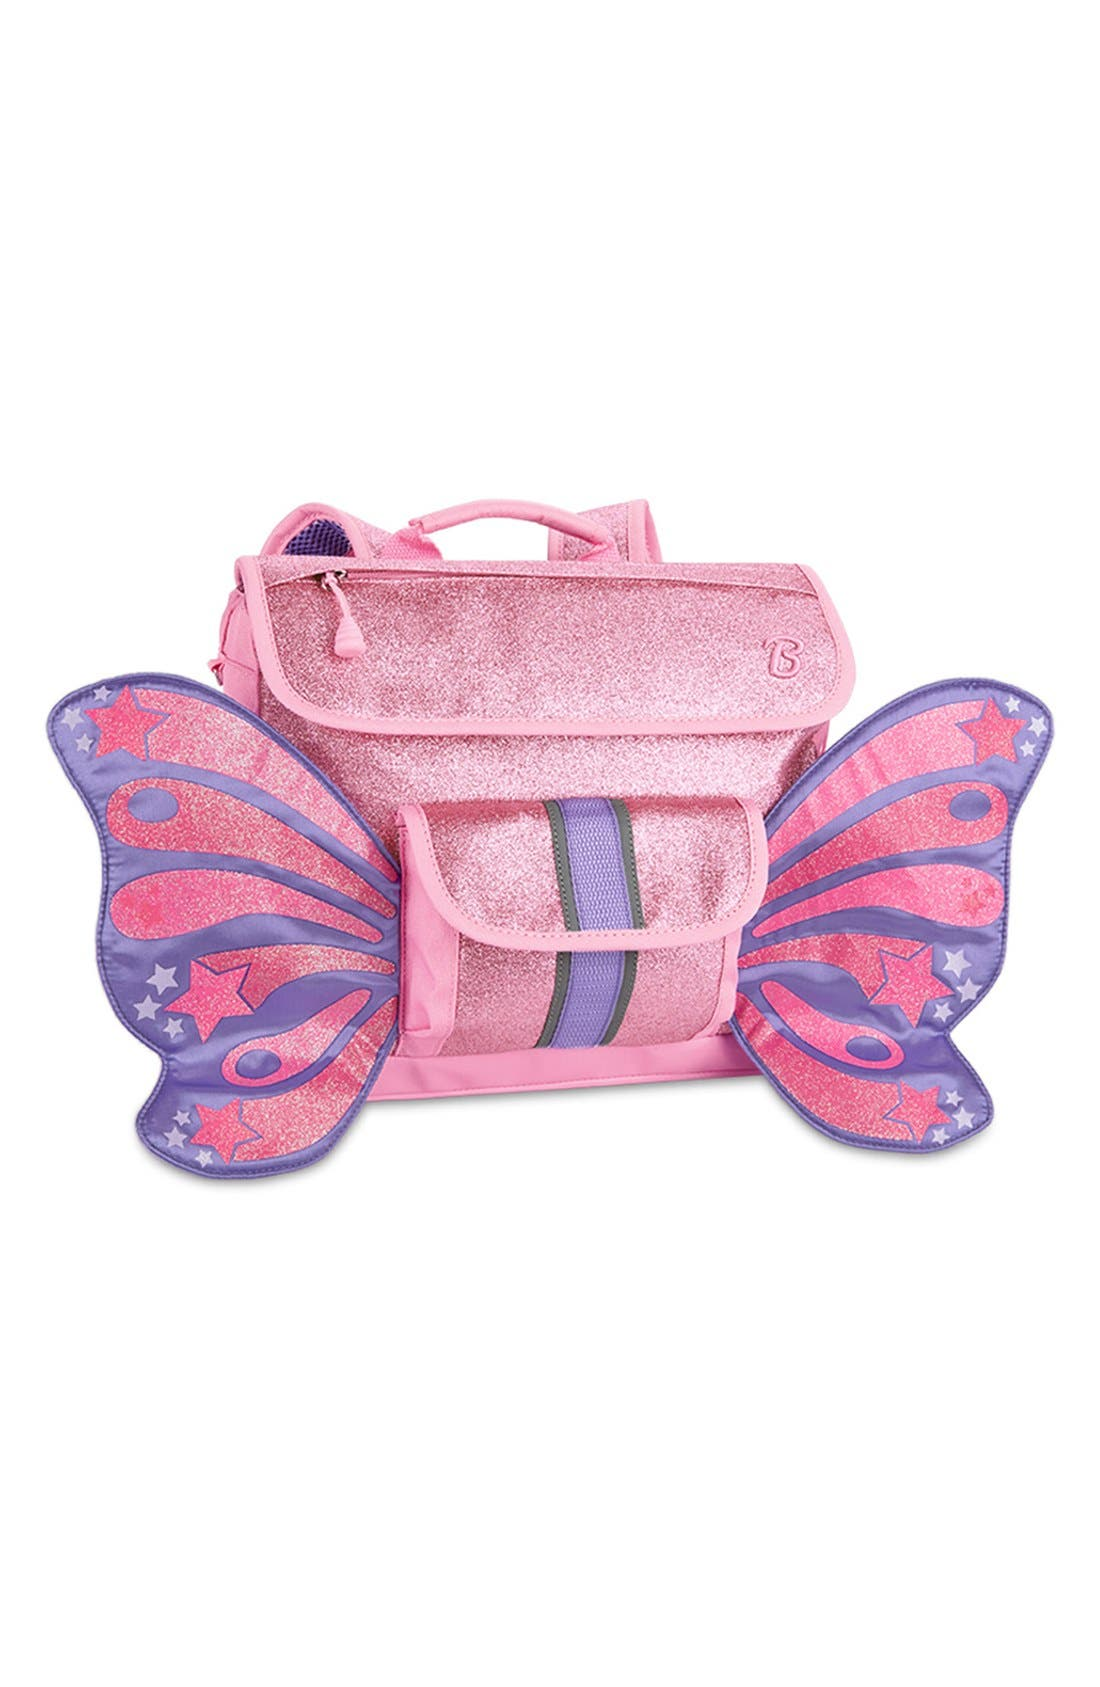 BIXBEE 'Small Sparkalicious Butterflyer' Backpack